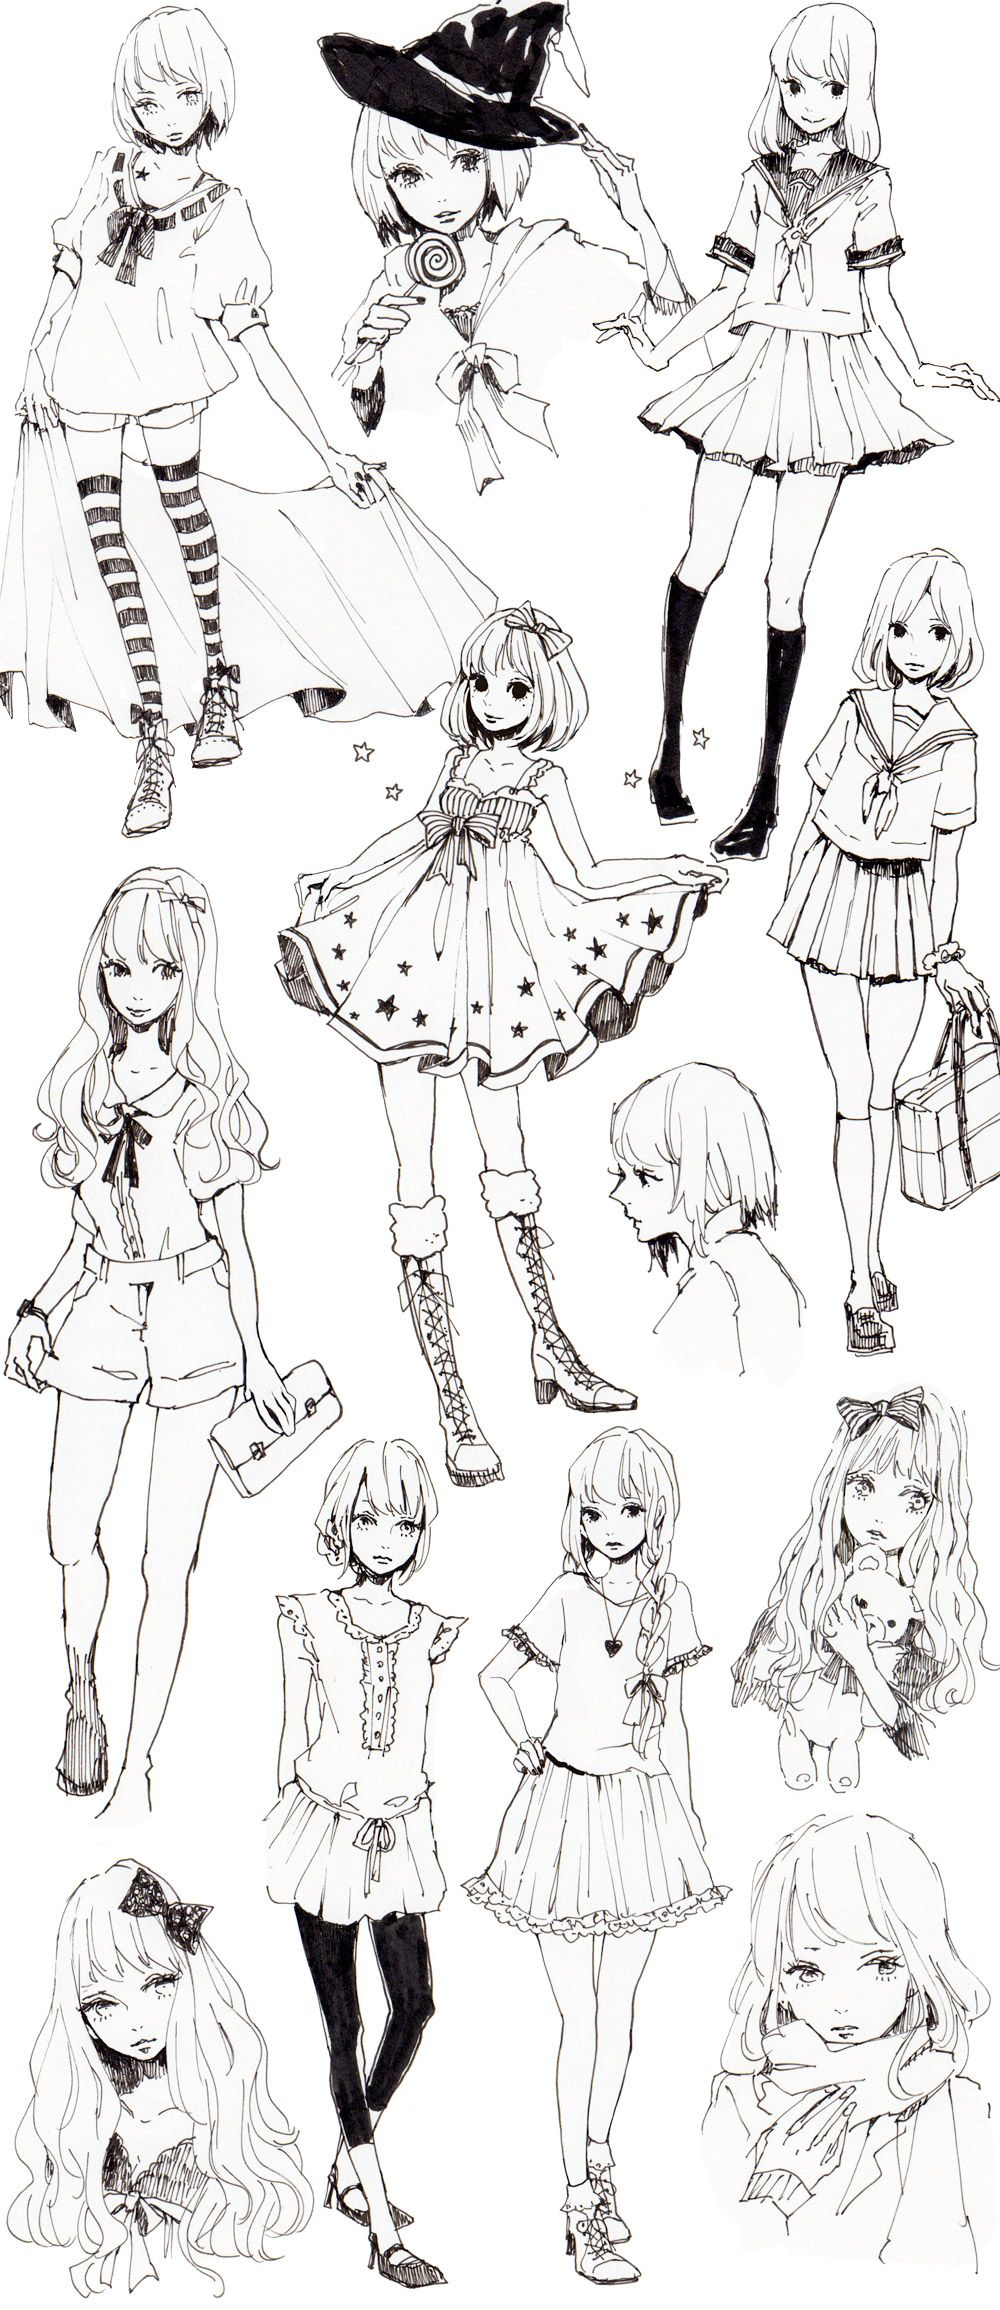 Beautiful anime girls drawing poses drawing sketches drawing tips drawing reference art